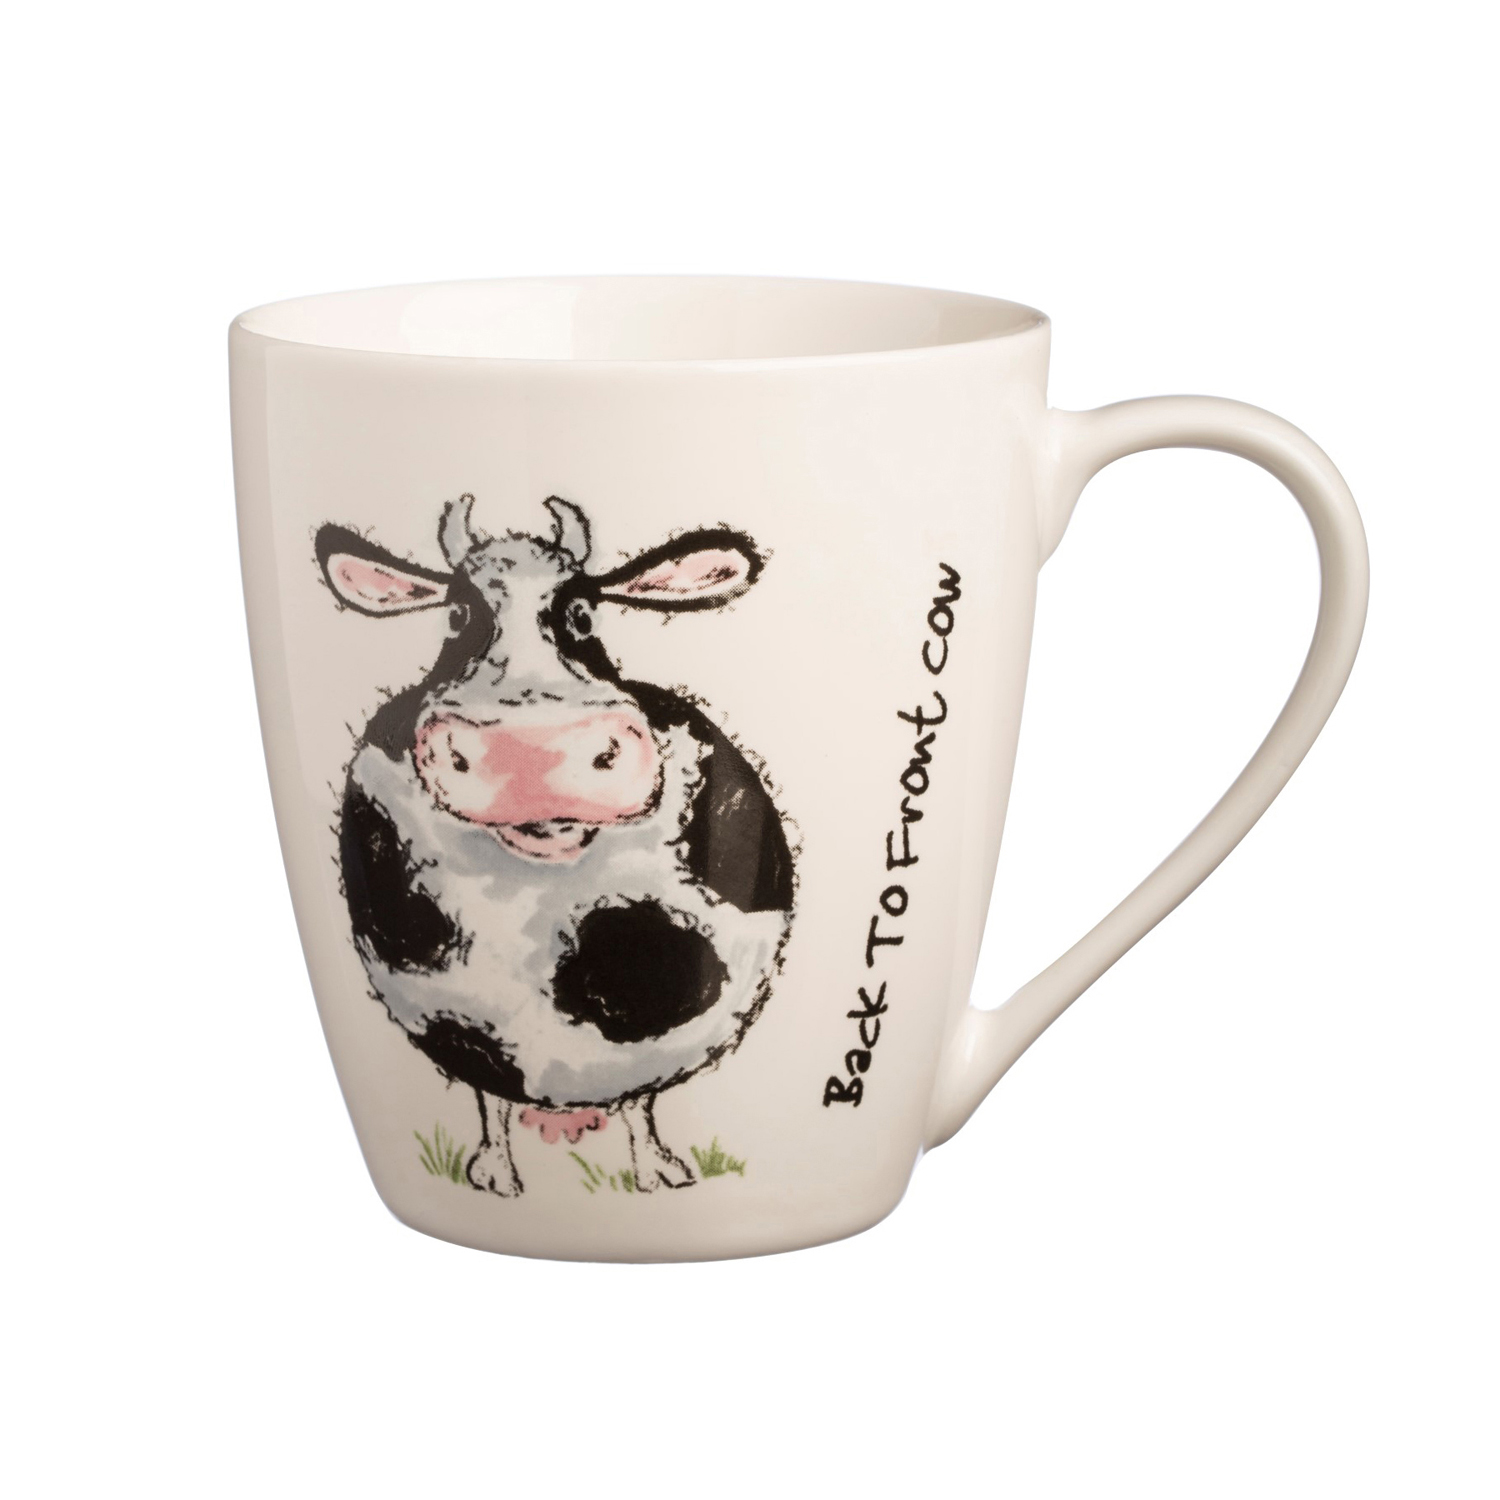 Price Amp Kensington Back To Front Cow Mug Home Store More